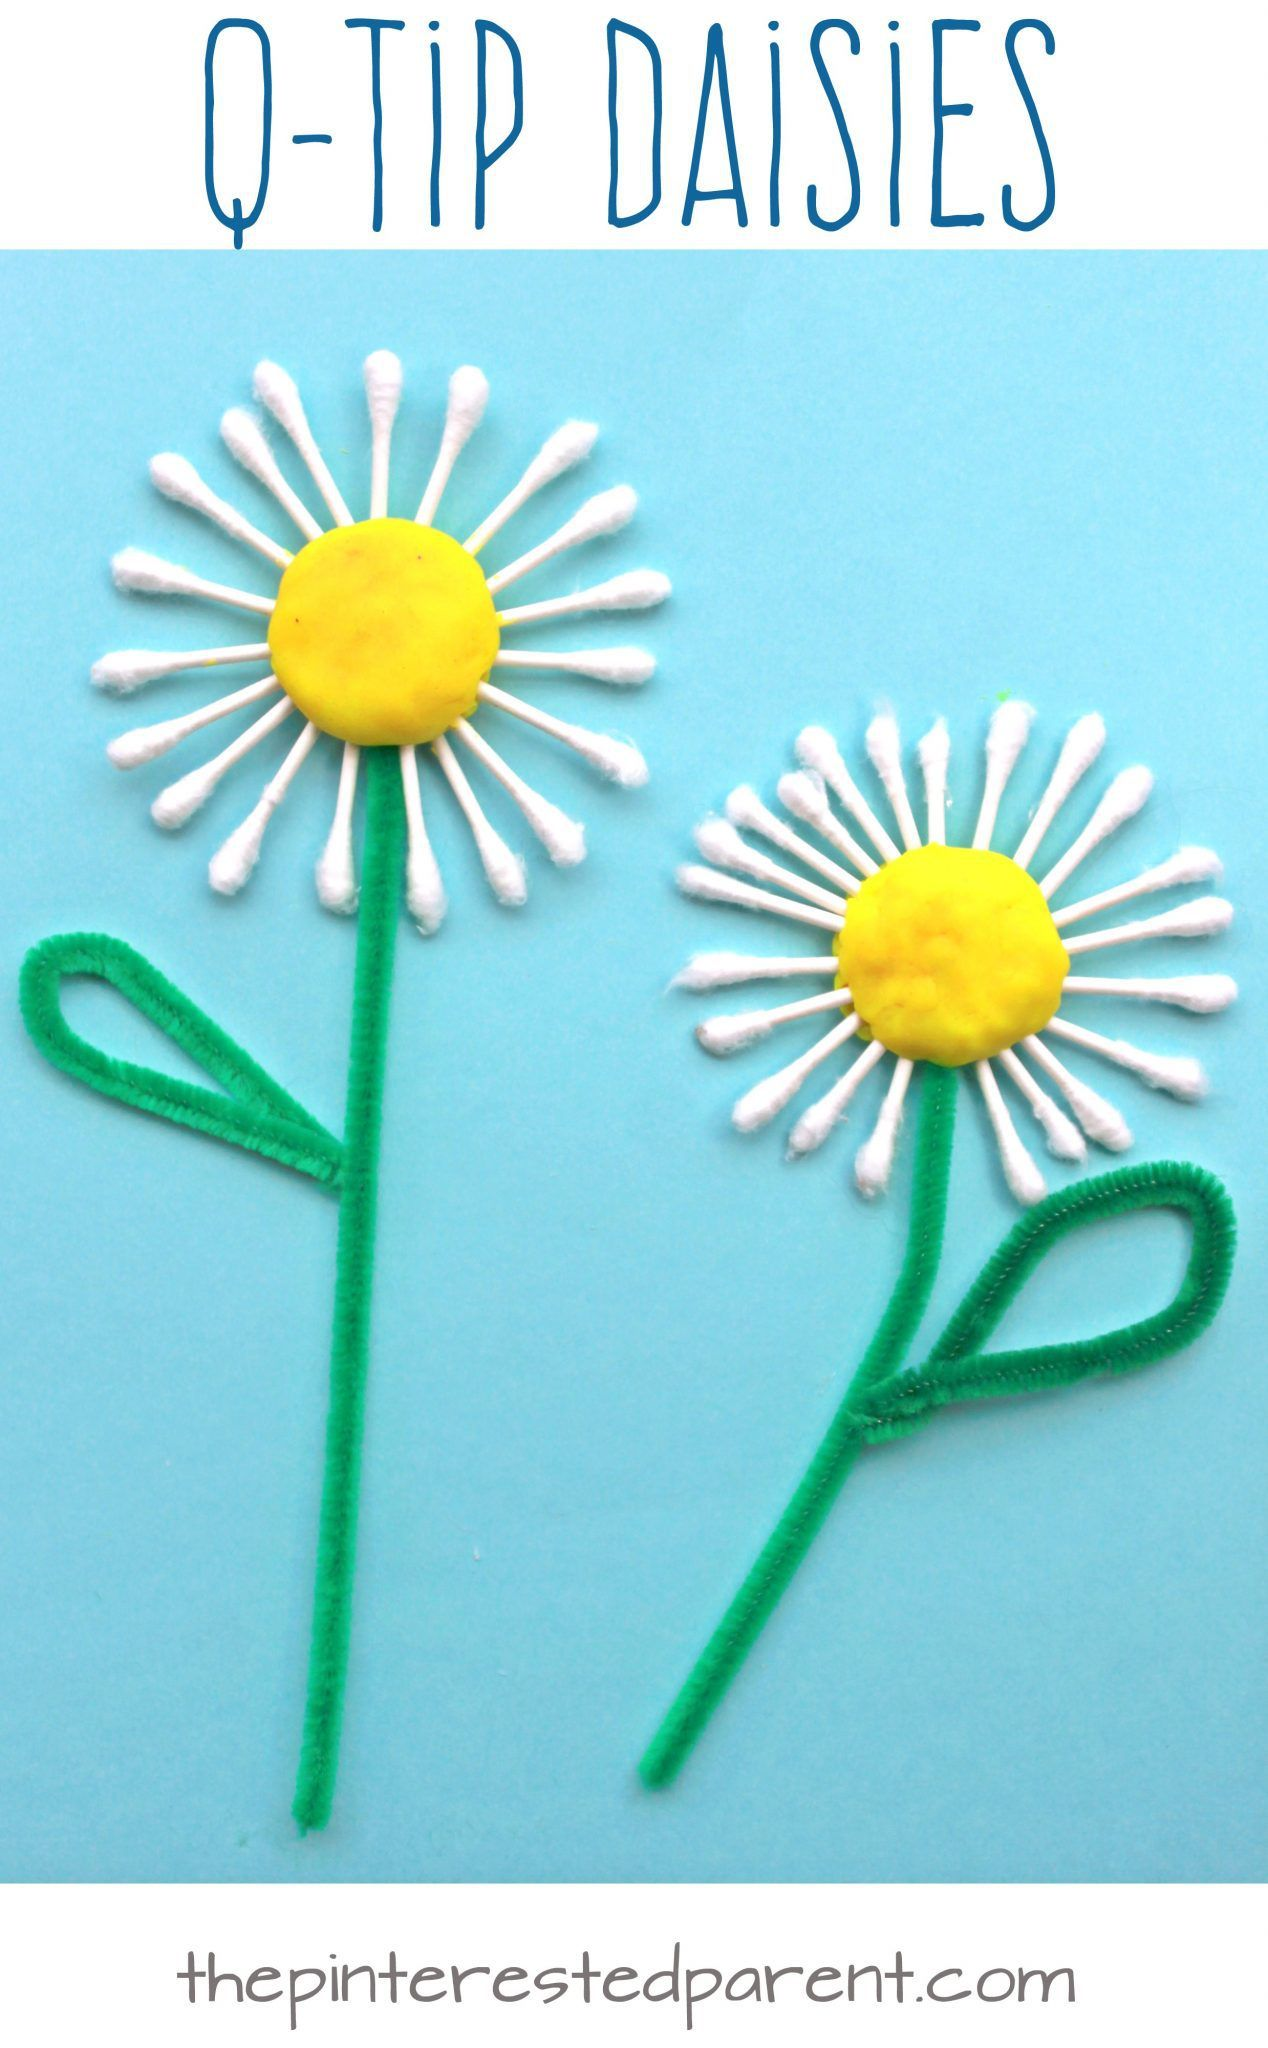 Plants arts and crafts - Easy Summer Craft A Q Tip Daisy A Lovely And Easy Craft For